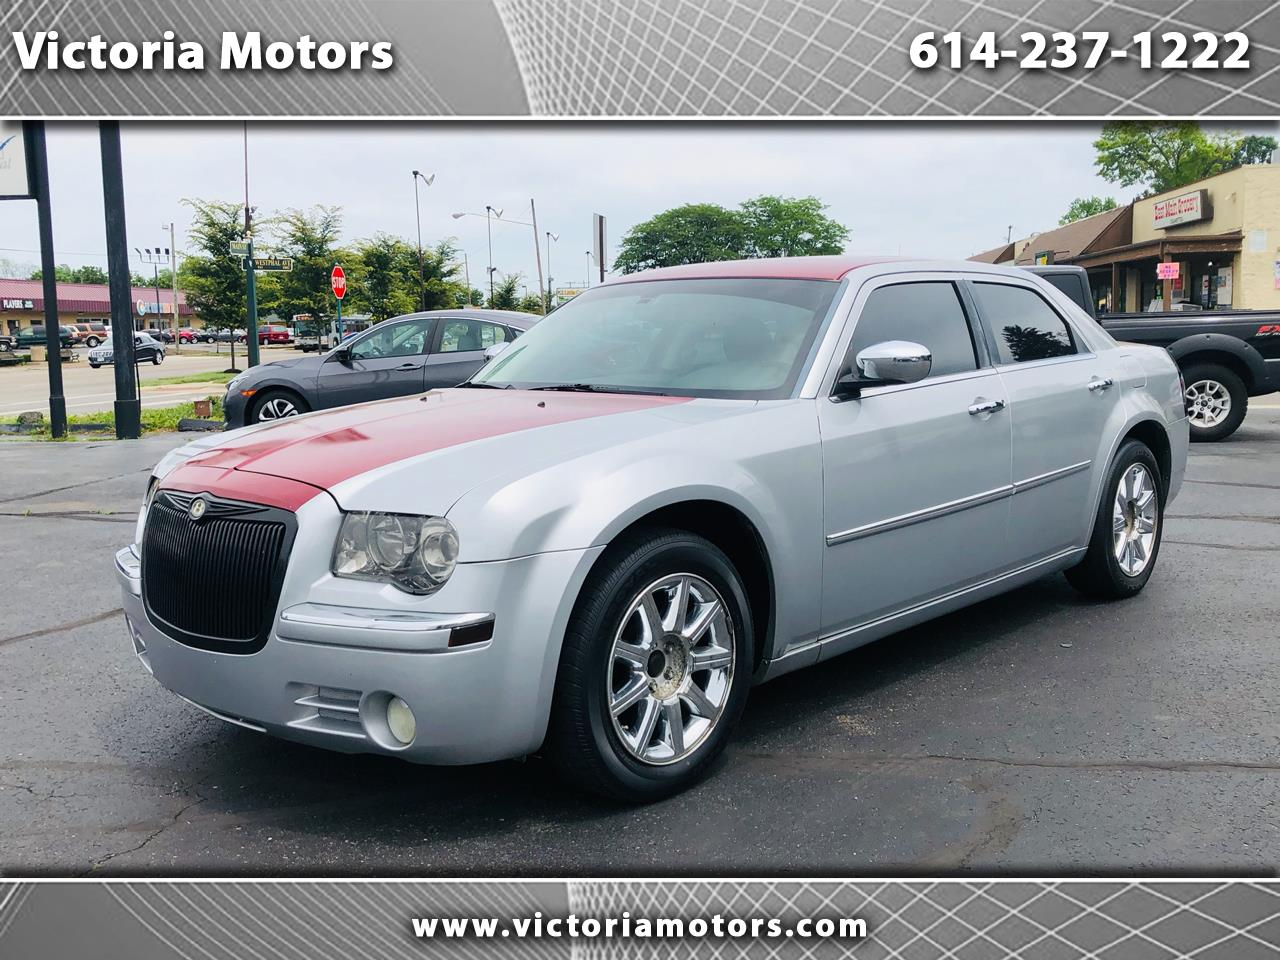 2009 Chrysler 300 4dr Sdn Limited RWD